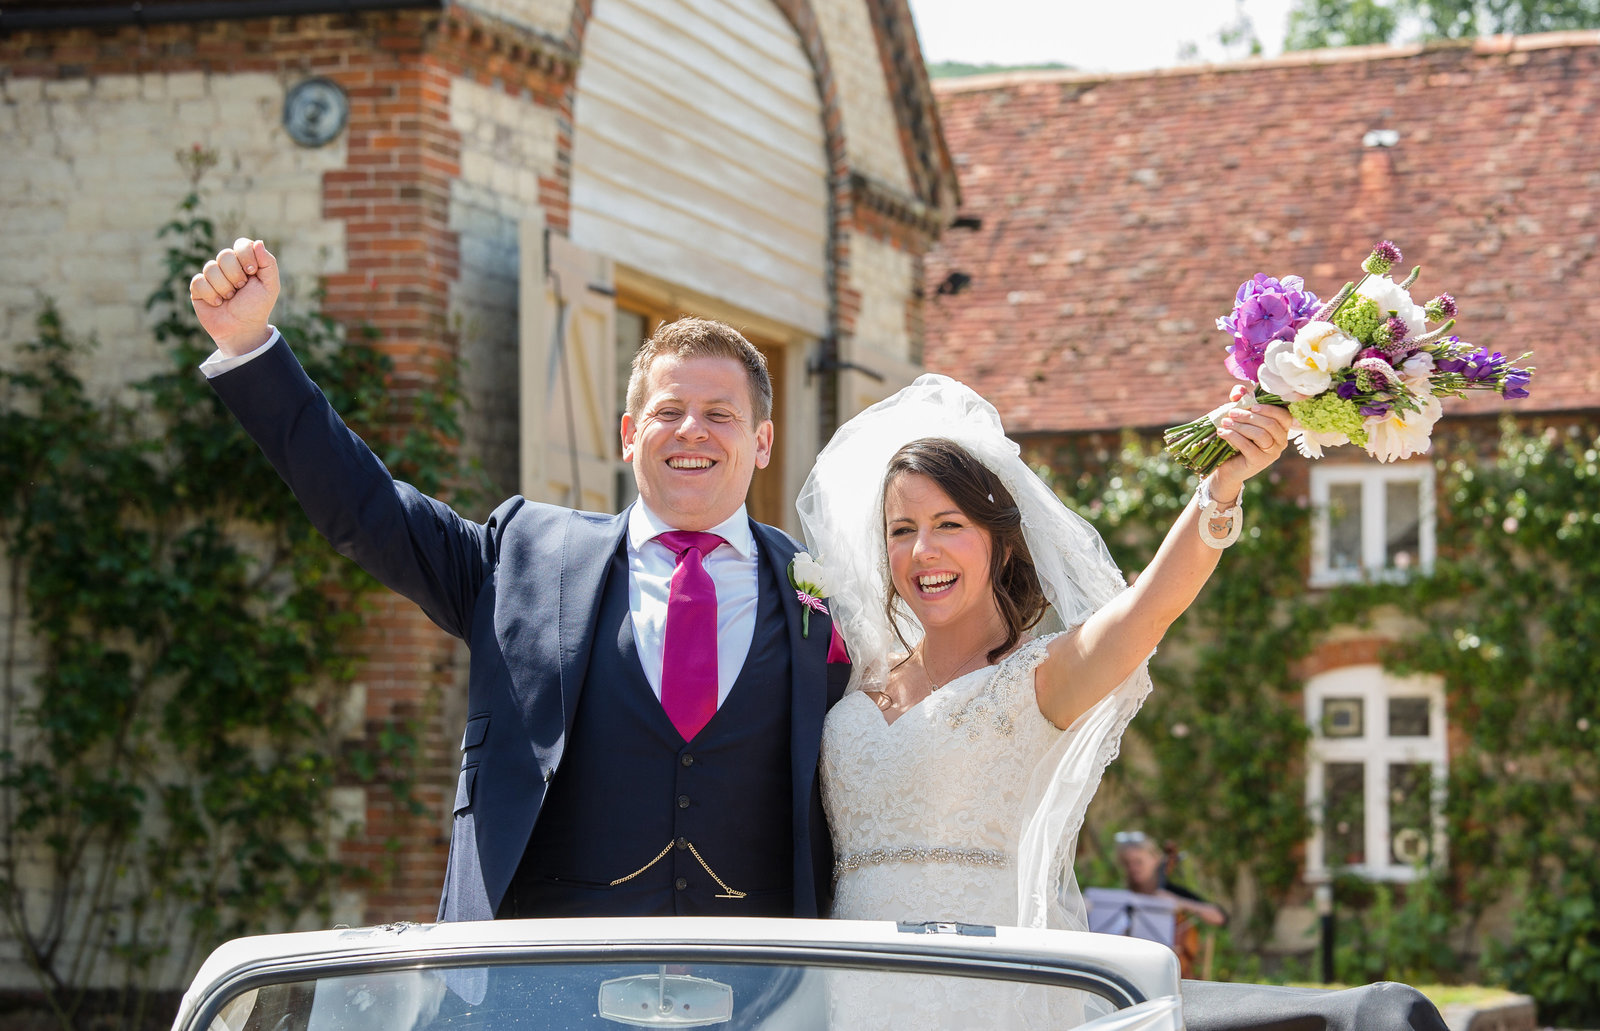 adorlee-061-wedding-photographer-chichester-west-sussex